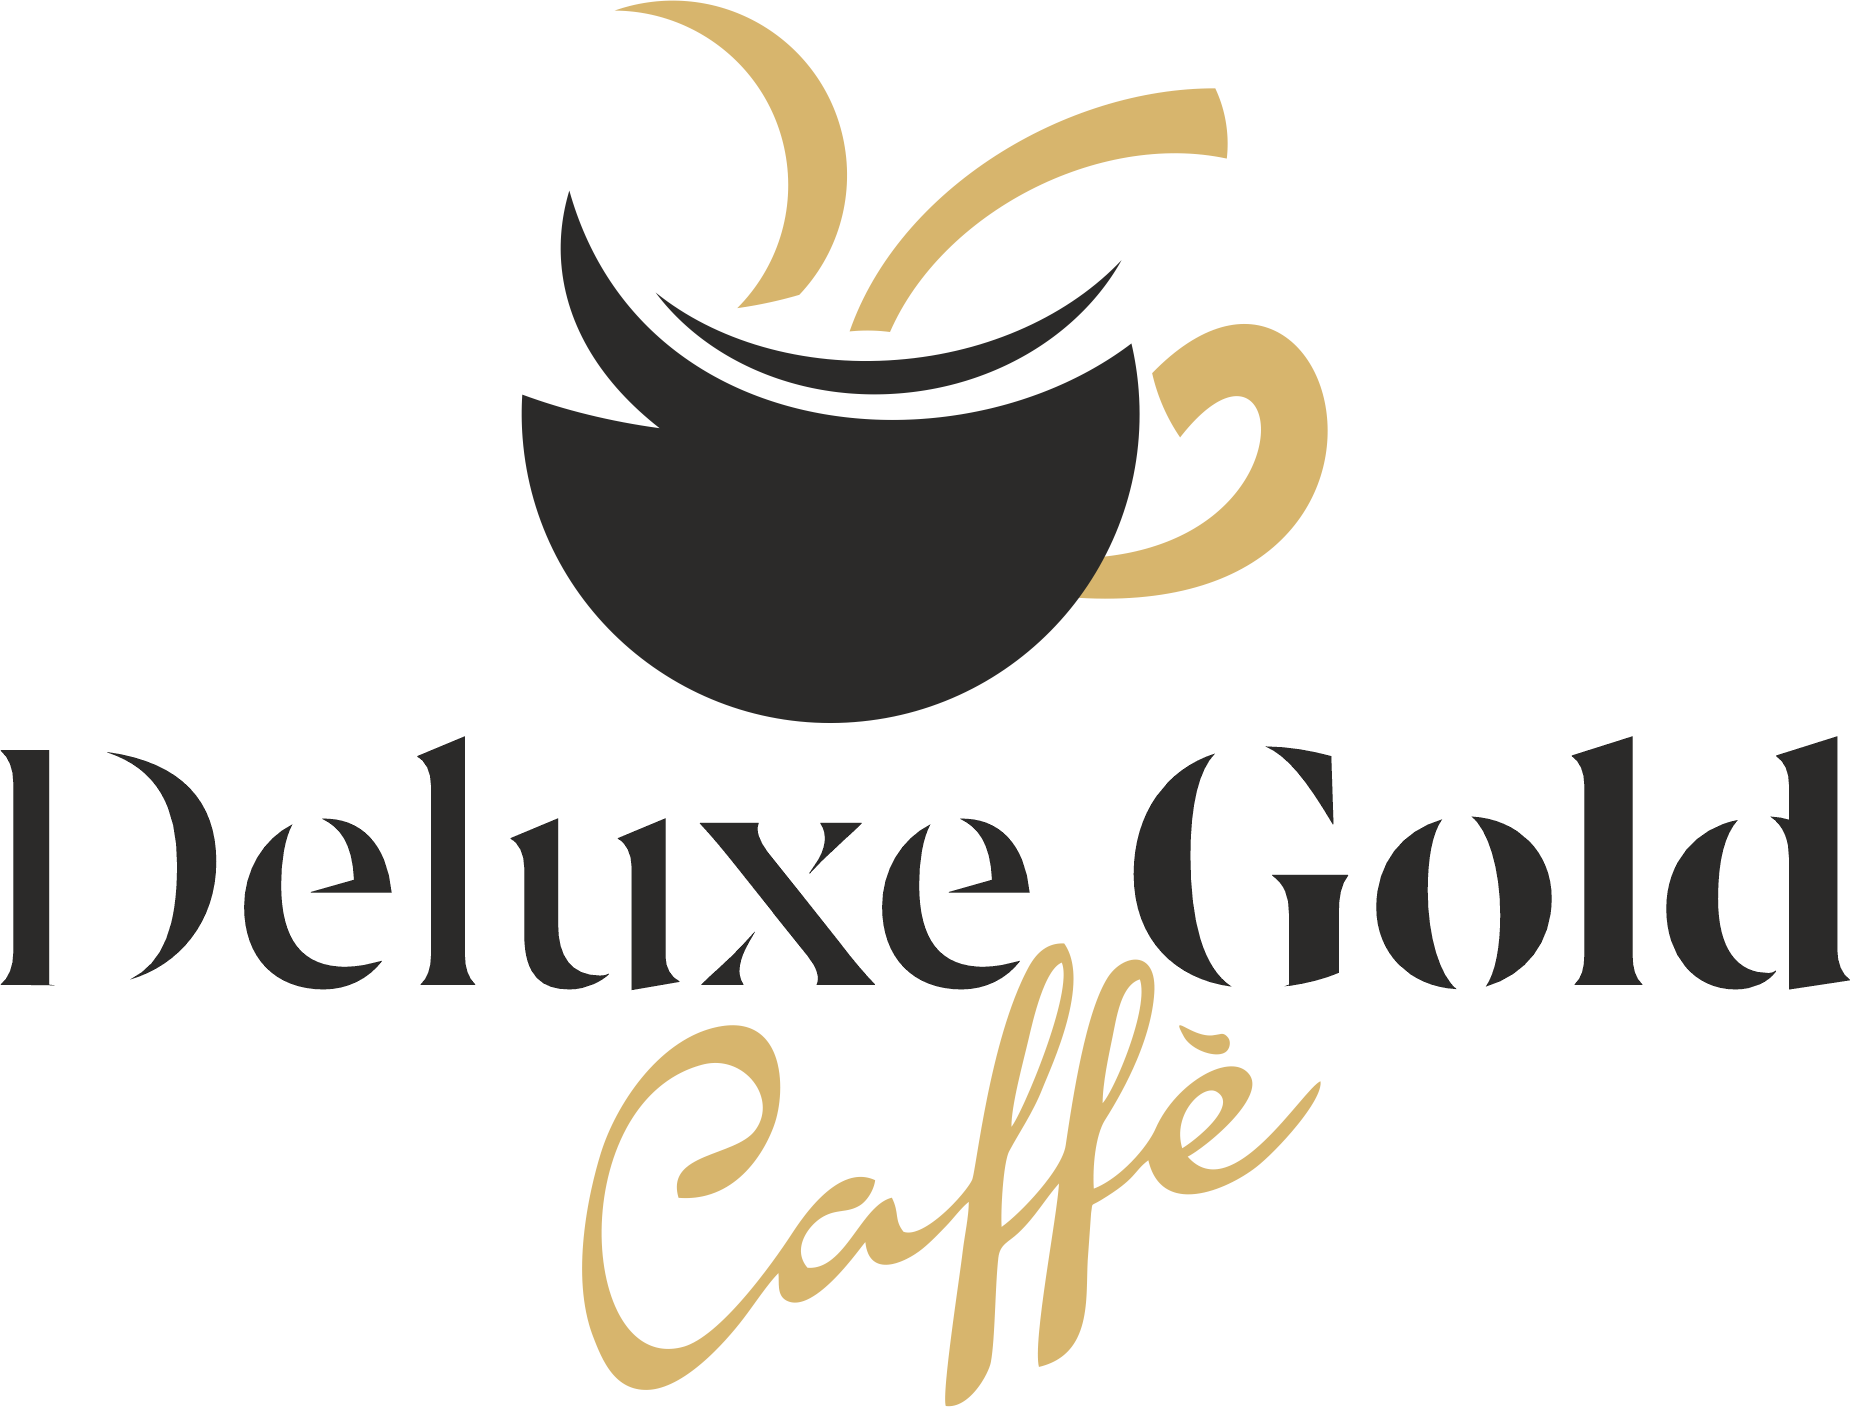 Delux Gold Caffe